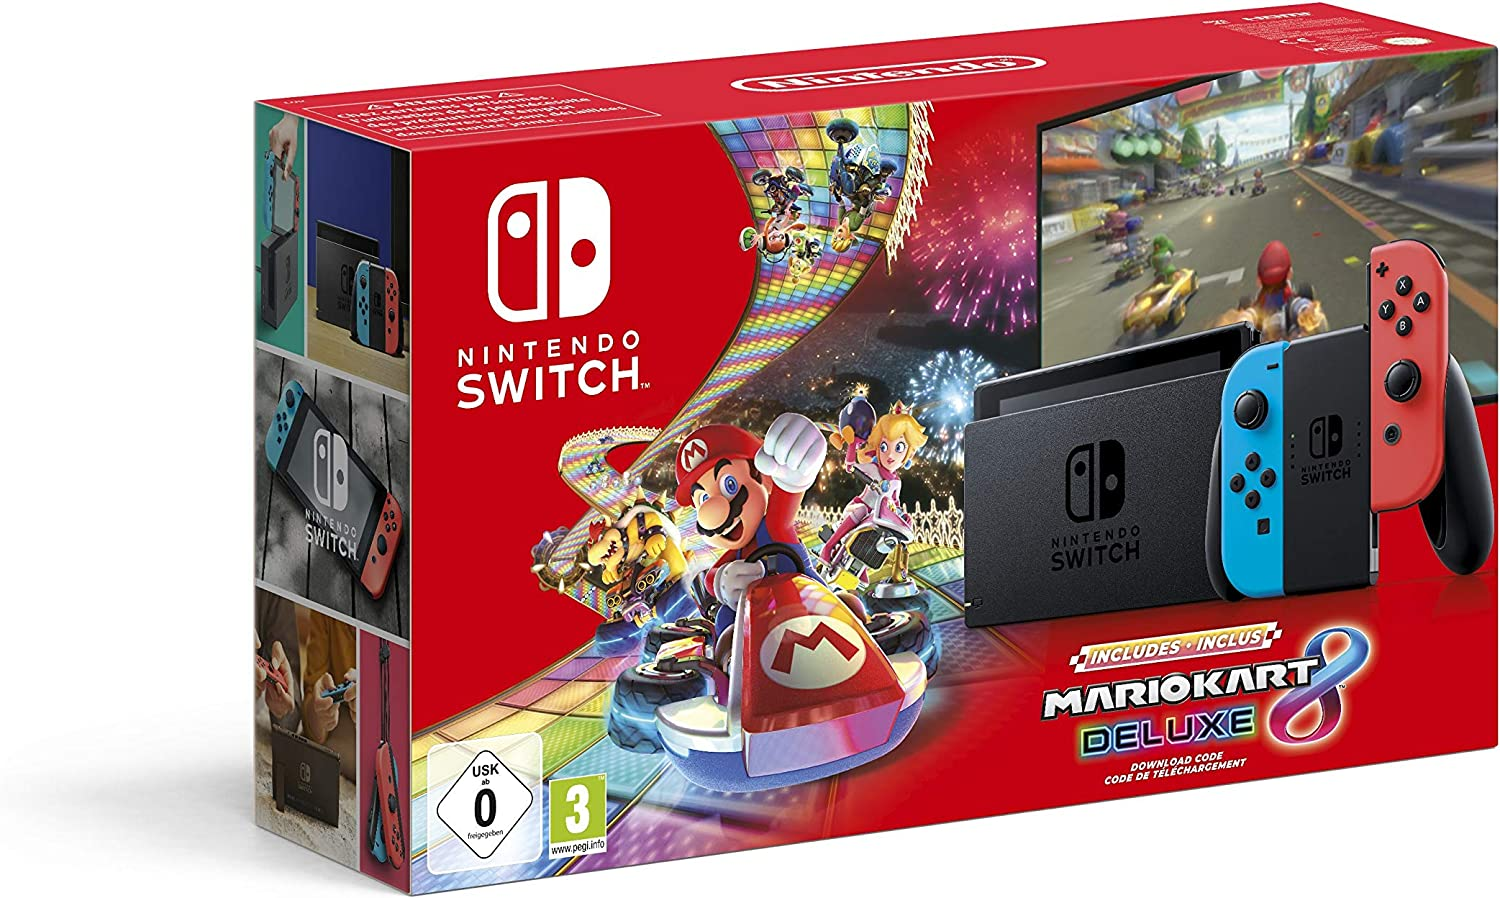 Nintendo Switch (Neon Red/Neon Blue) with Mario Kart 8 Deluxe - Limited Edition Bundle [Importación inglesa]: Amazon.es: Videojuegos